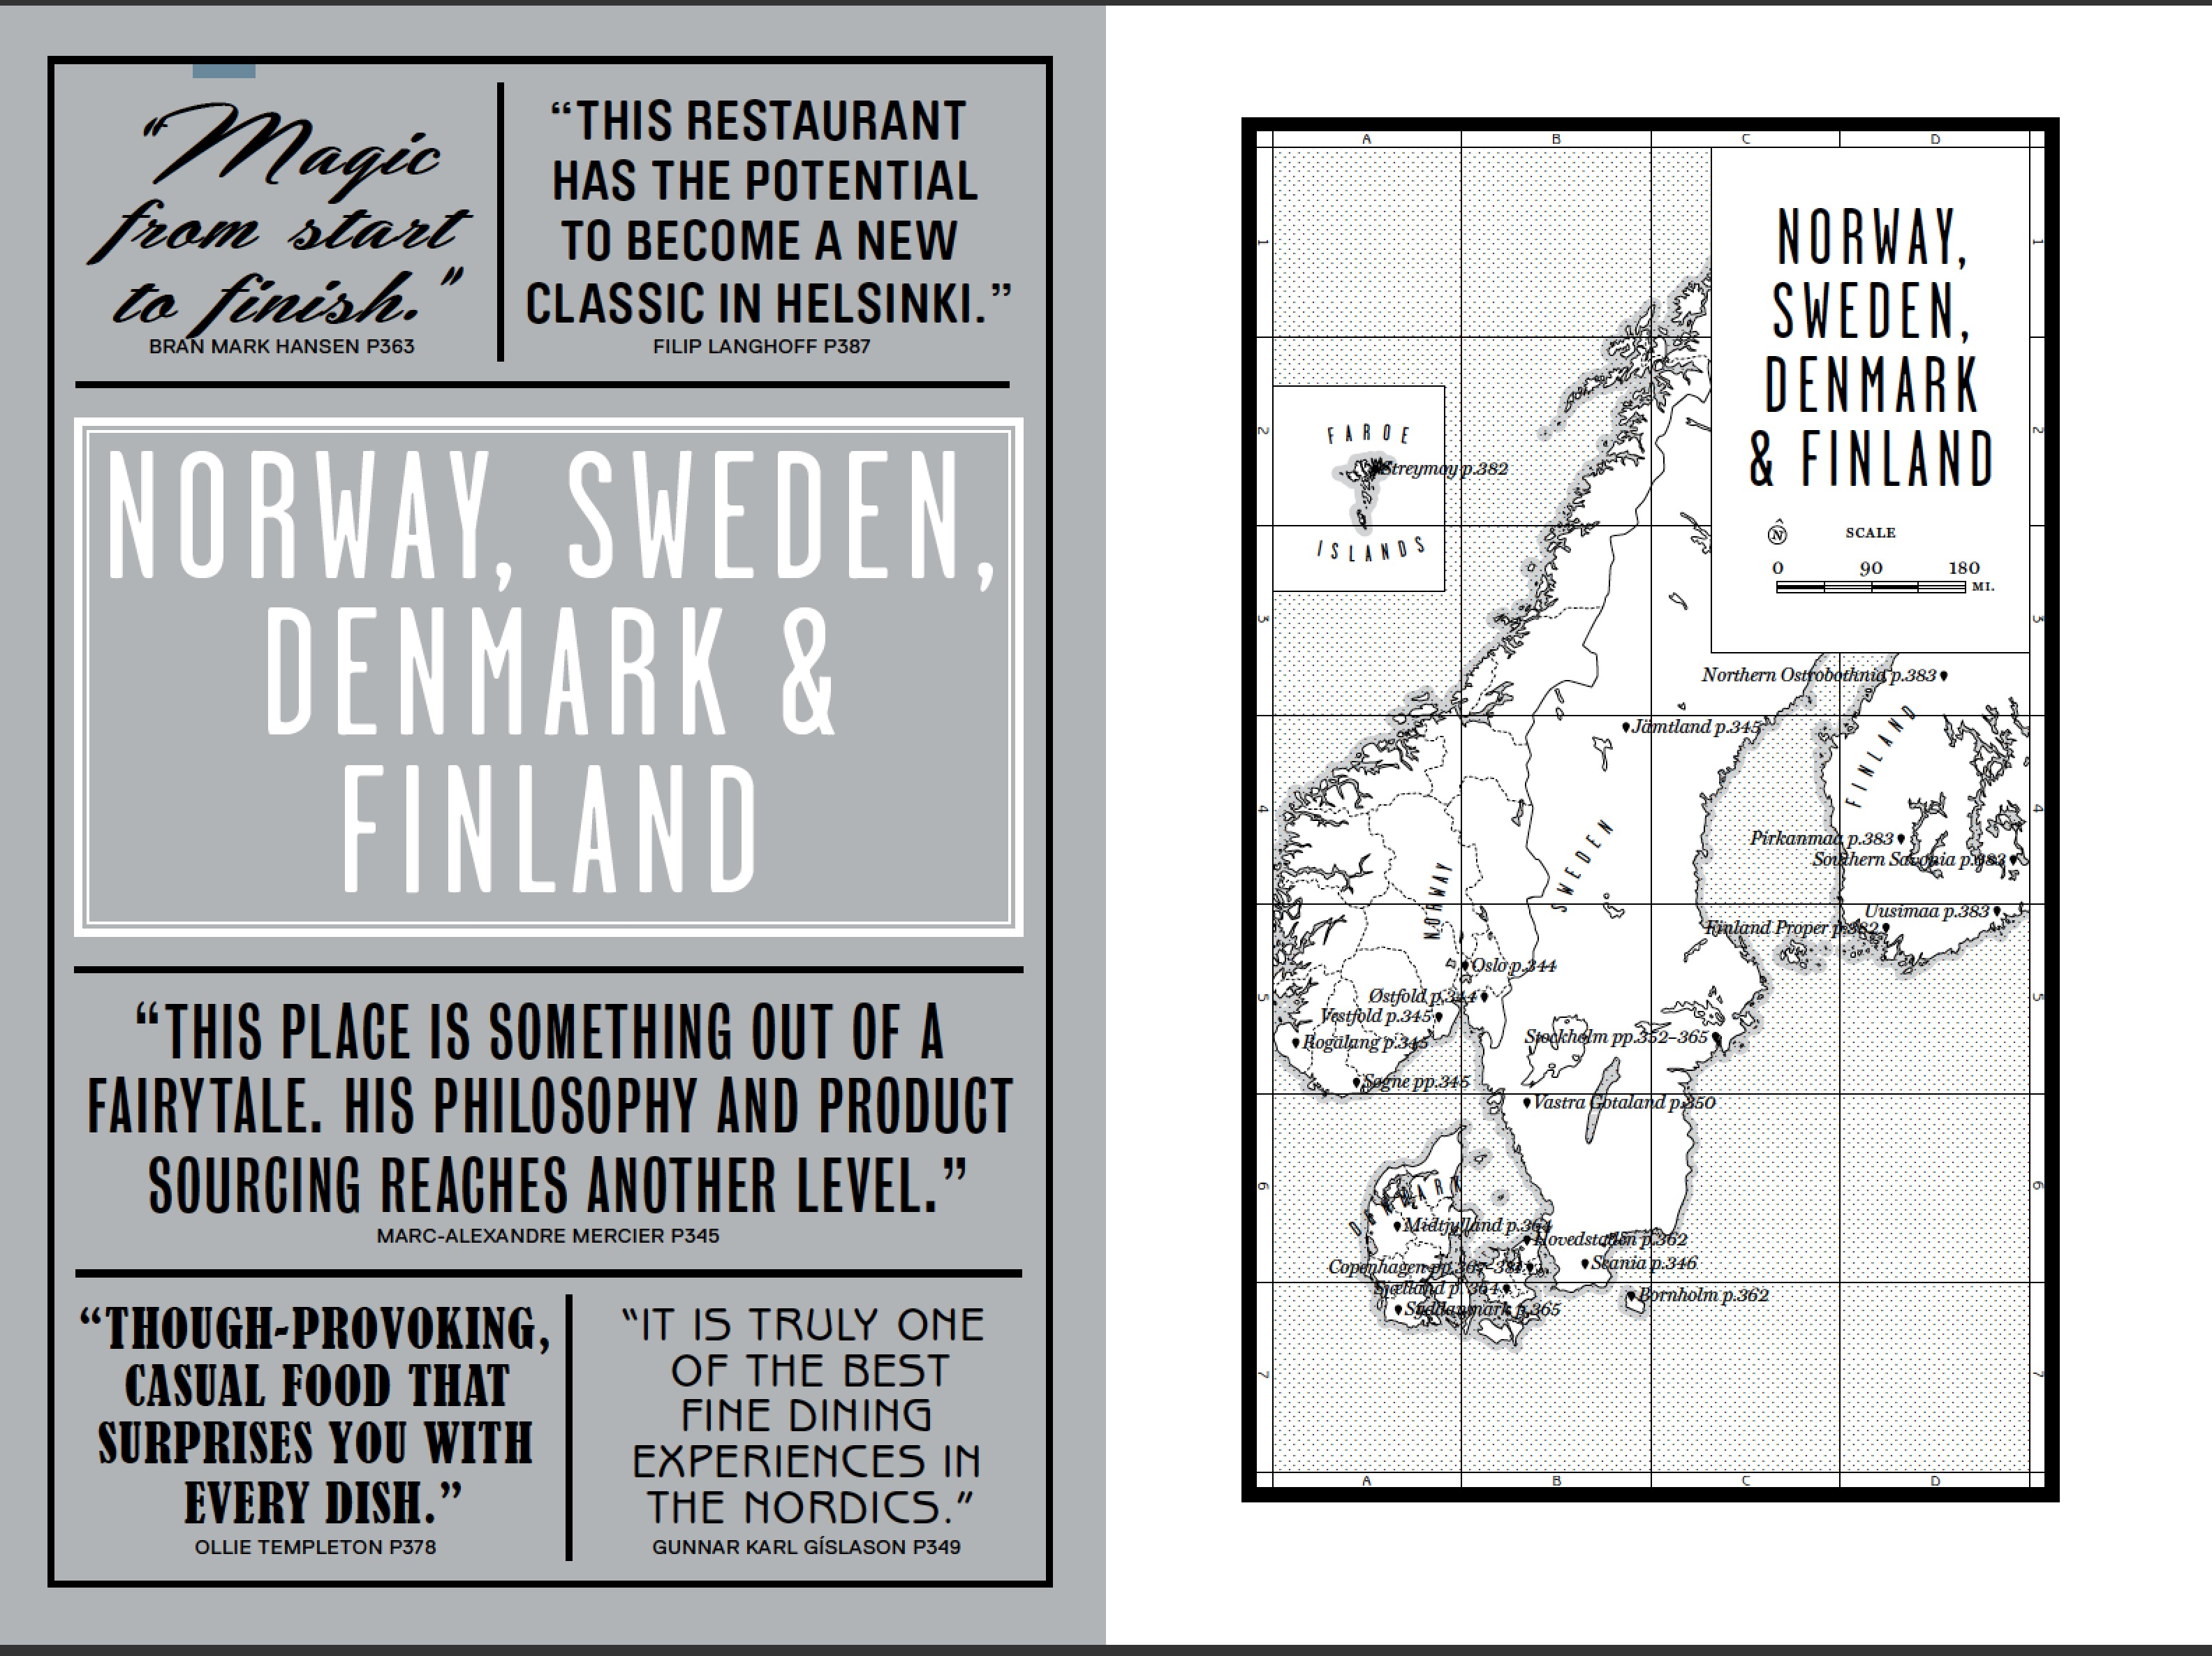 The Norway, Sweden, Denmark and Finland introduction from our new book Where Chefs Eat